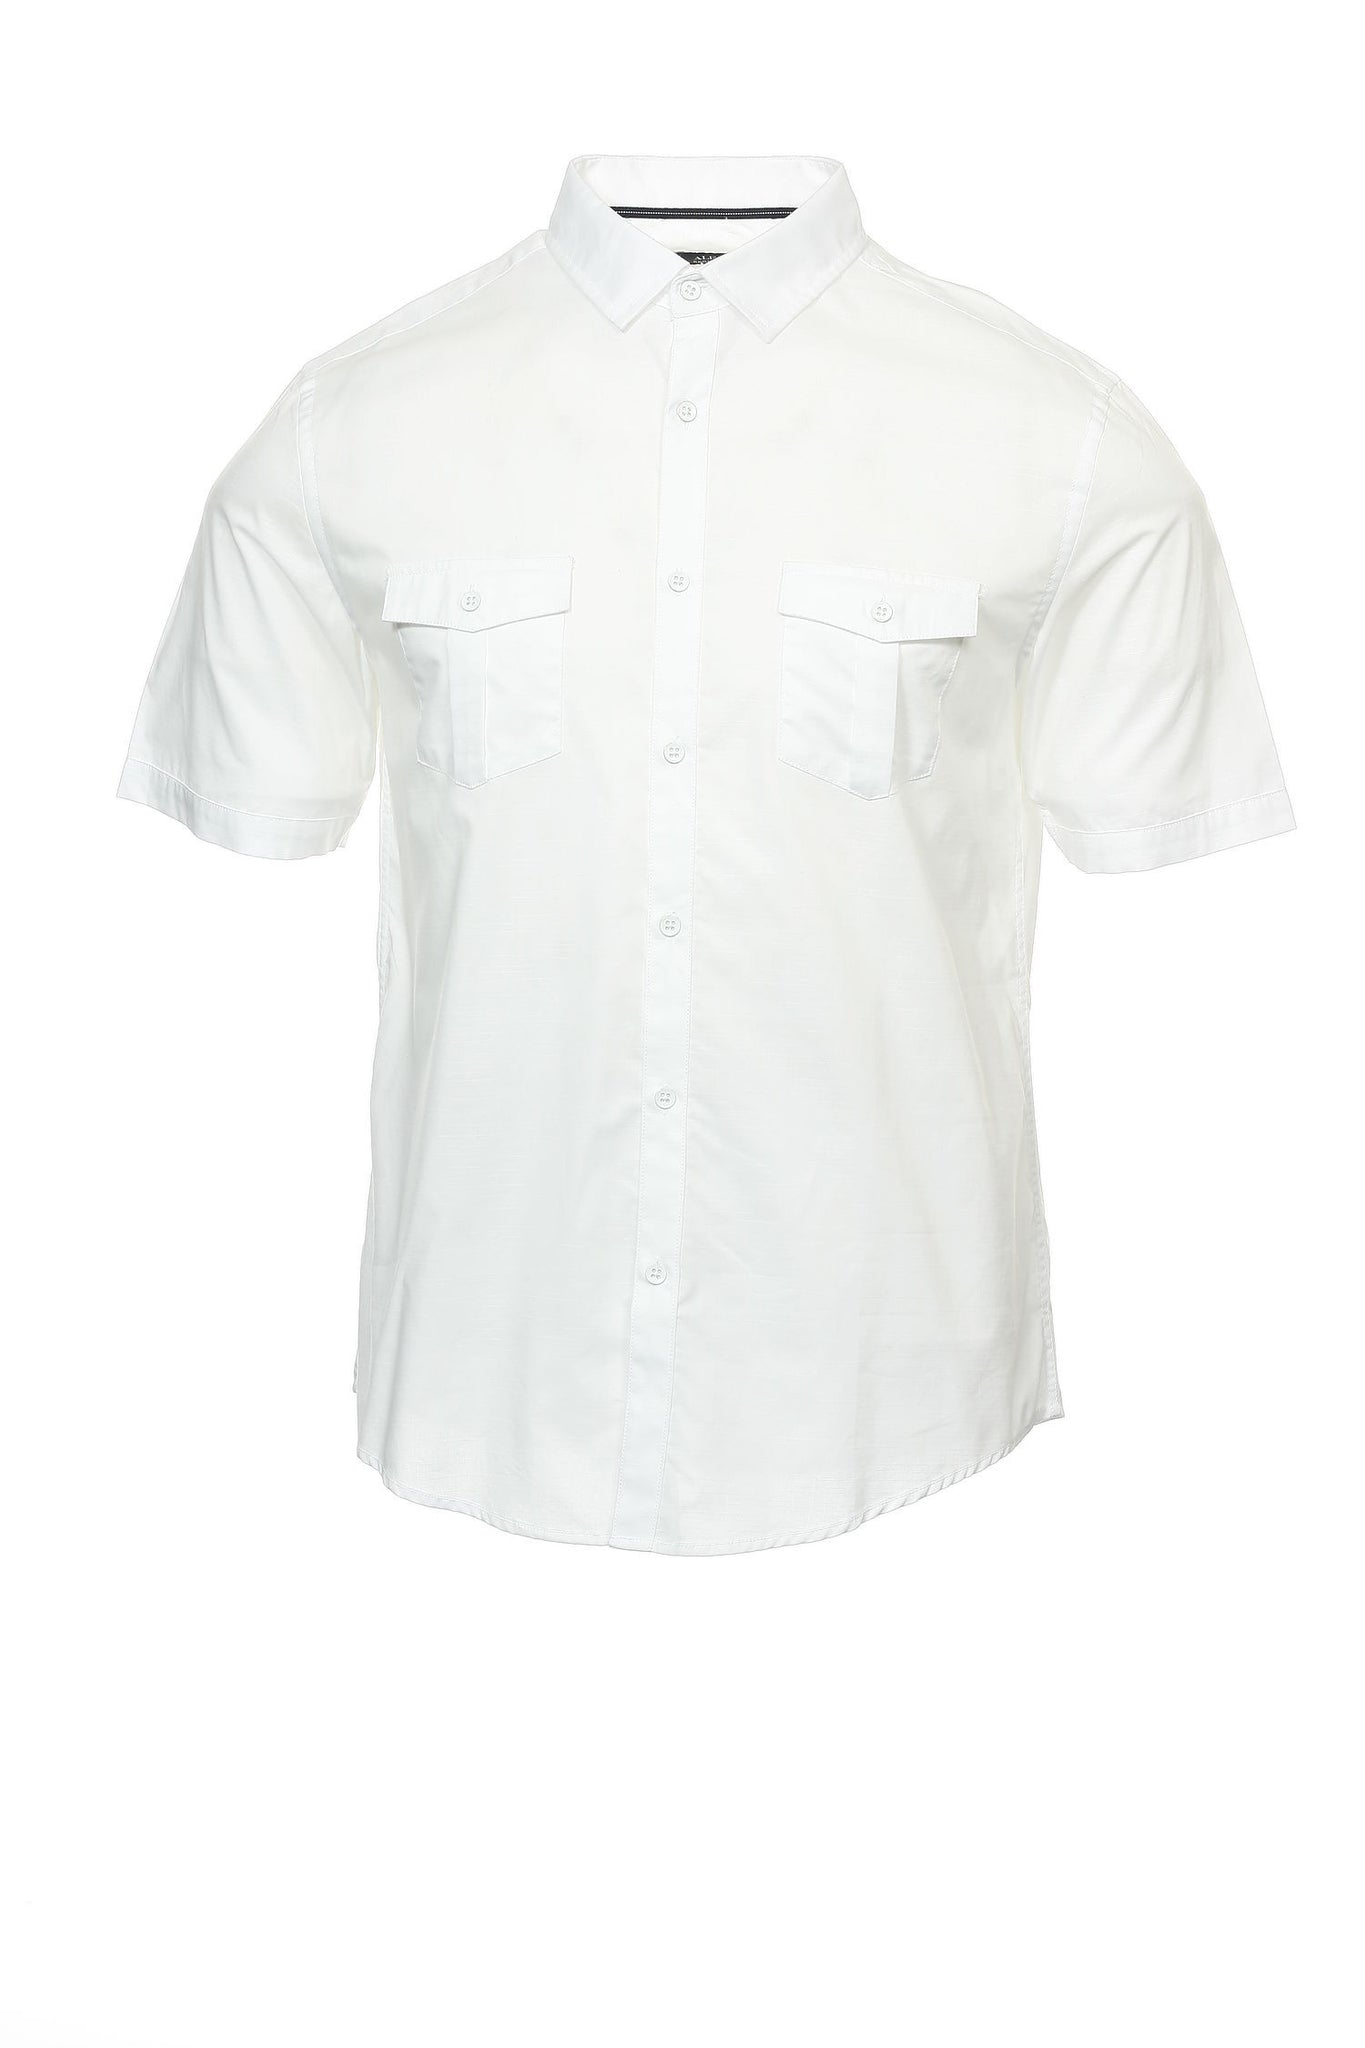 Alfani Mens White Heather Button Down Shirt